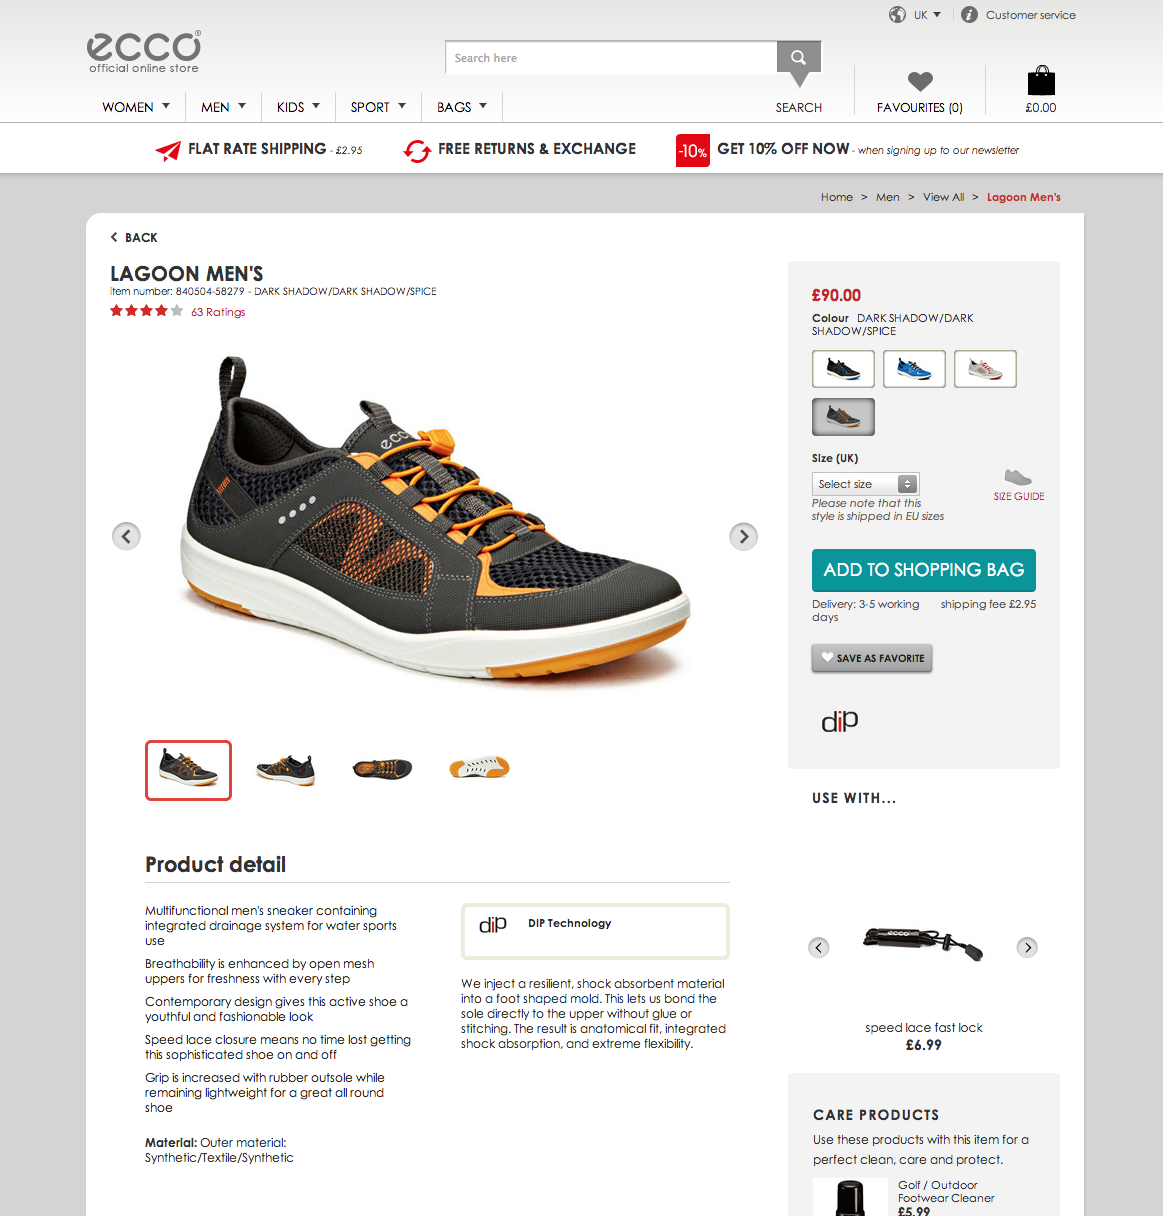 Designer Shoe Warehouse Html on designer shoes at zappos, designer fashion warehouse, designer shoes for dogs, beer warehouse, costco wholesale warehouse, designer clothes warehouse, brand men's warehouse, appliance parts warehouse,